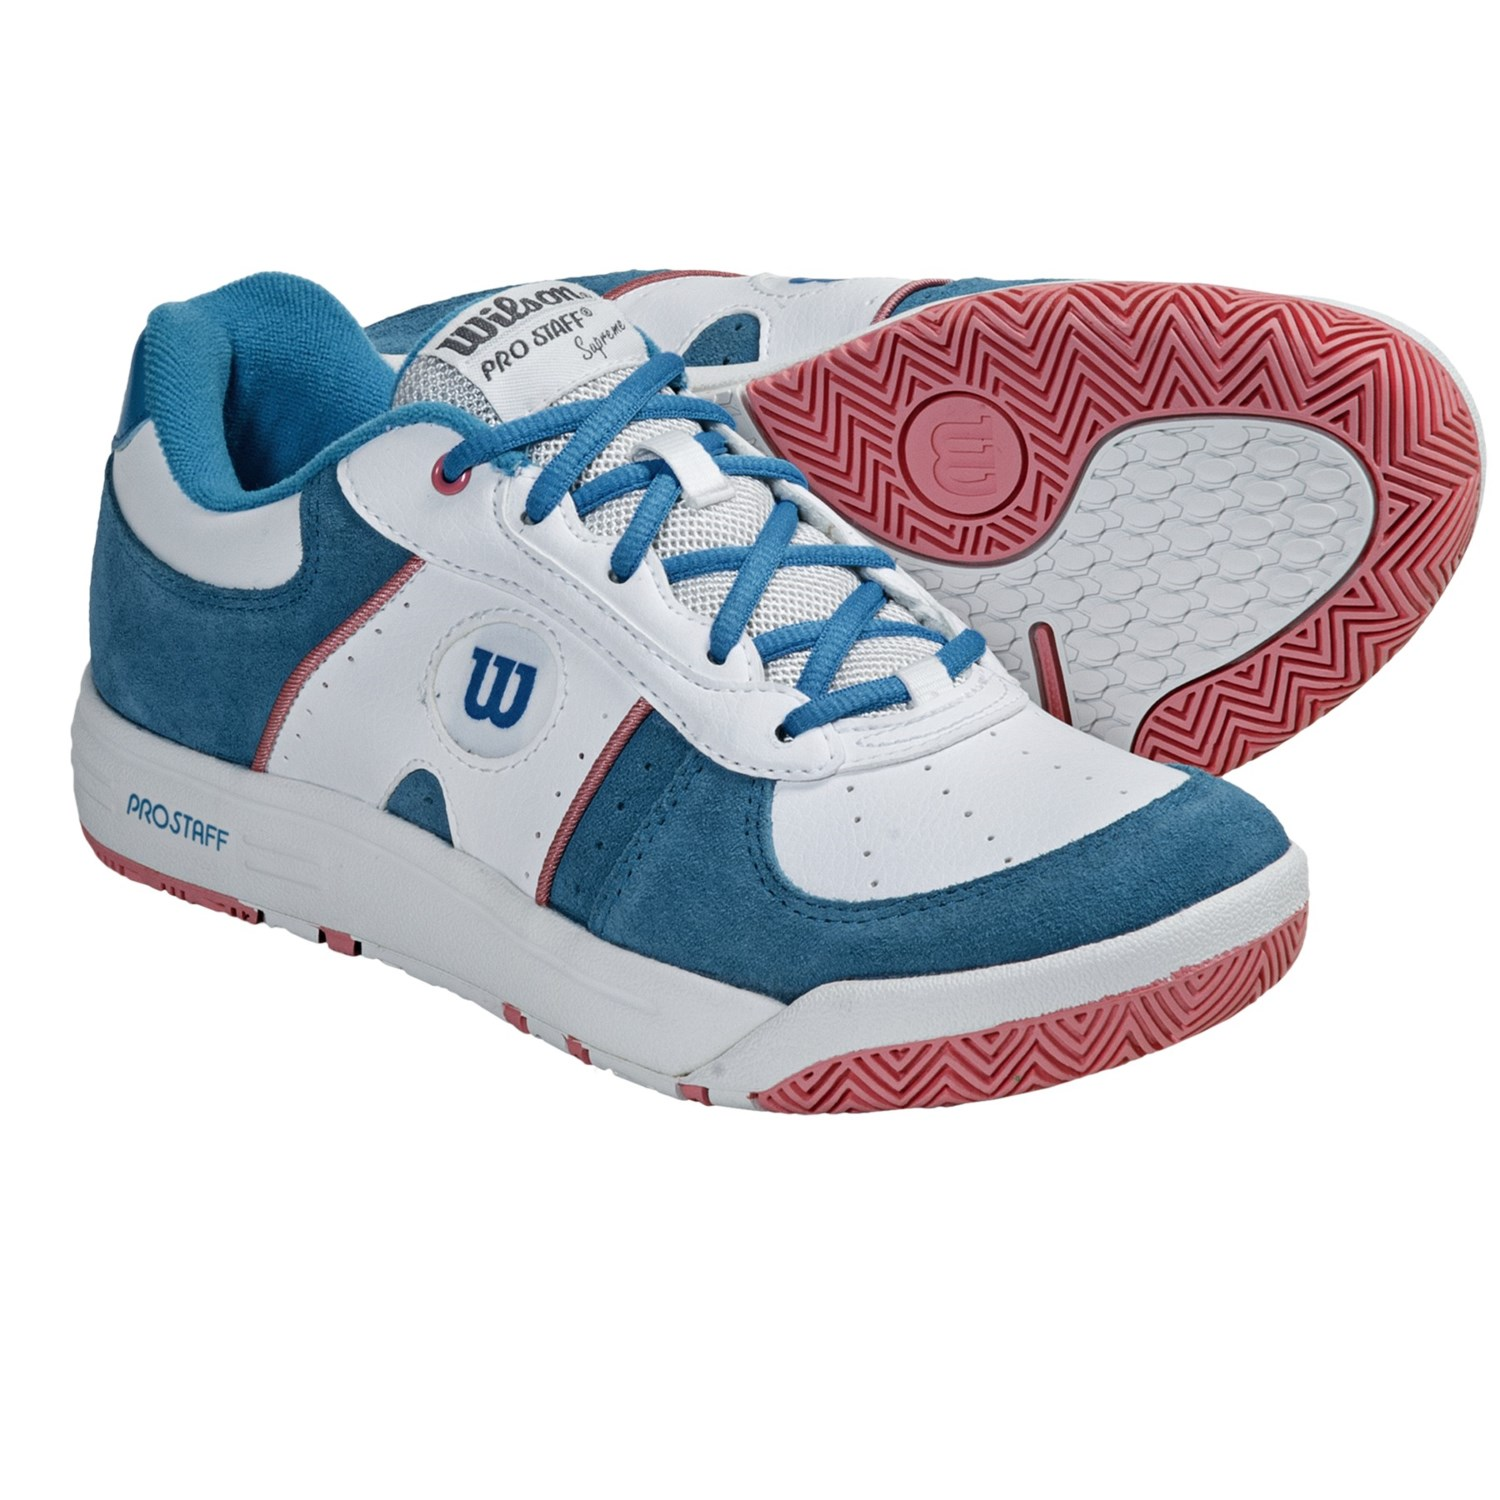 Staff Classic Supreme Tennis Shoes (For Women) in White/Cyan/Prep Pink